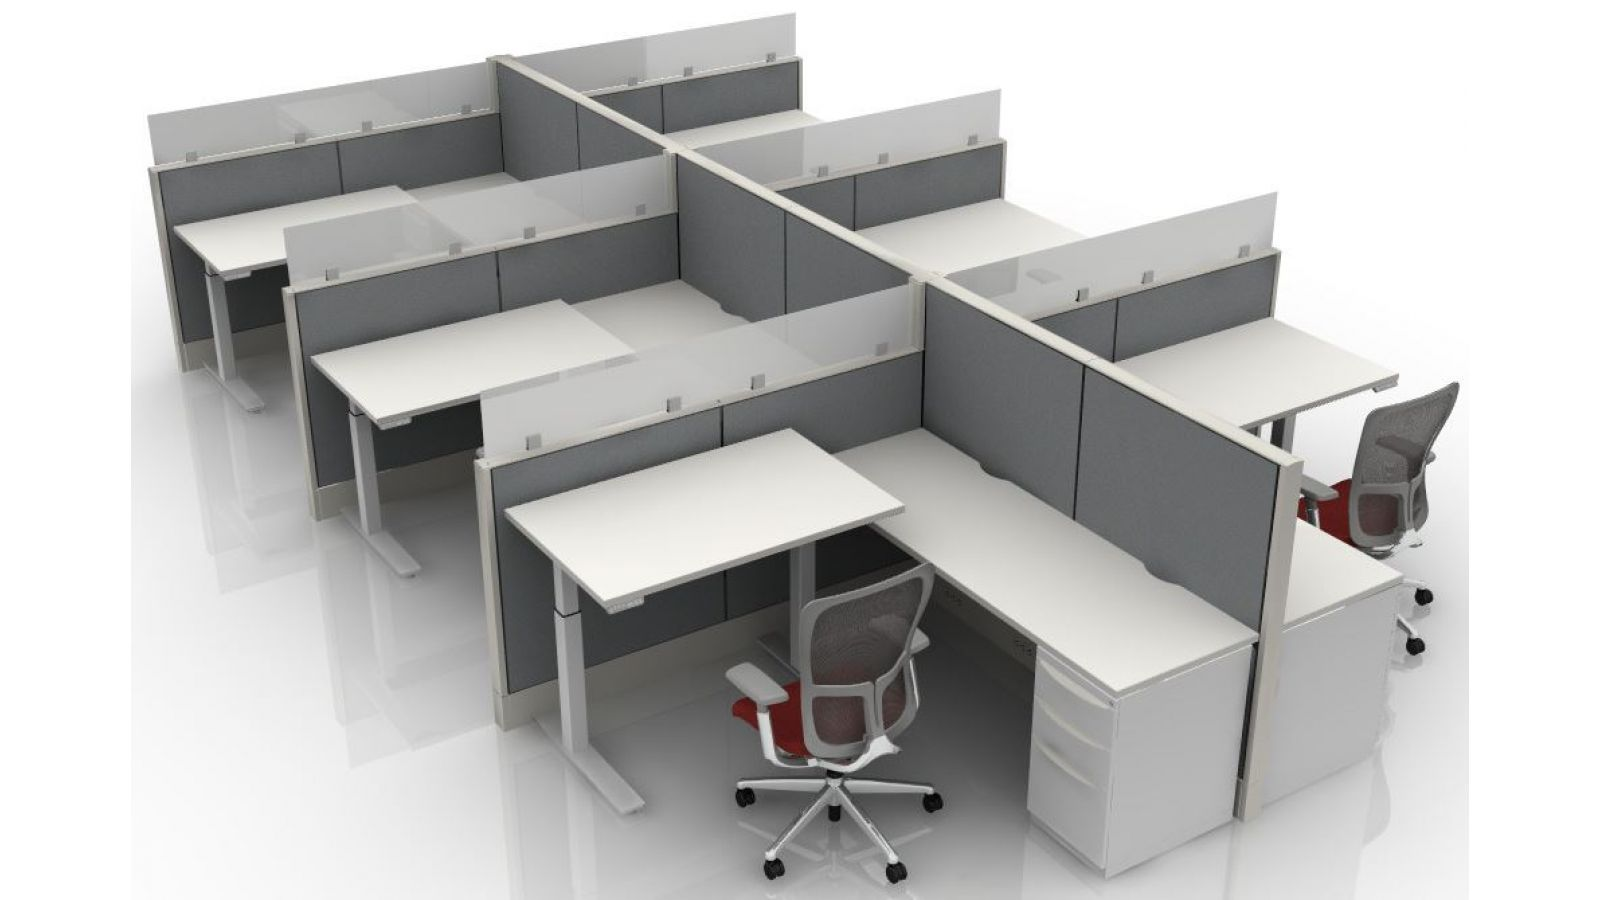 Envirotech Remanufactured Workstations